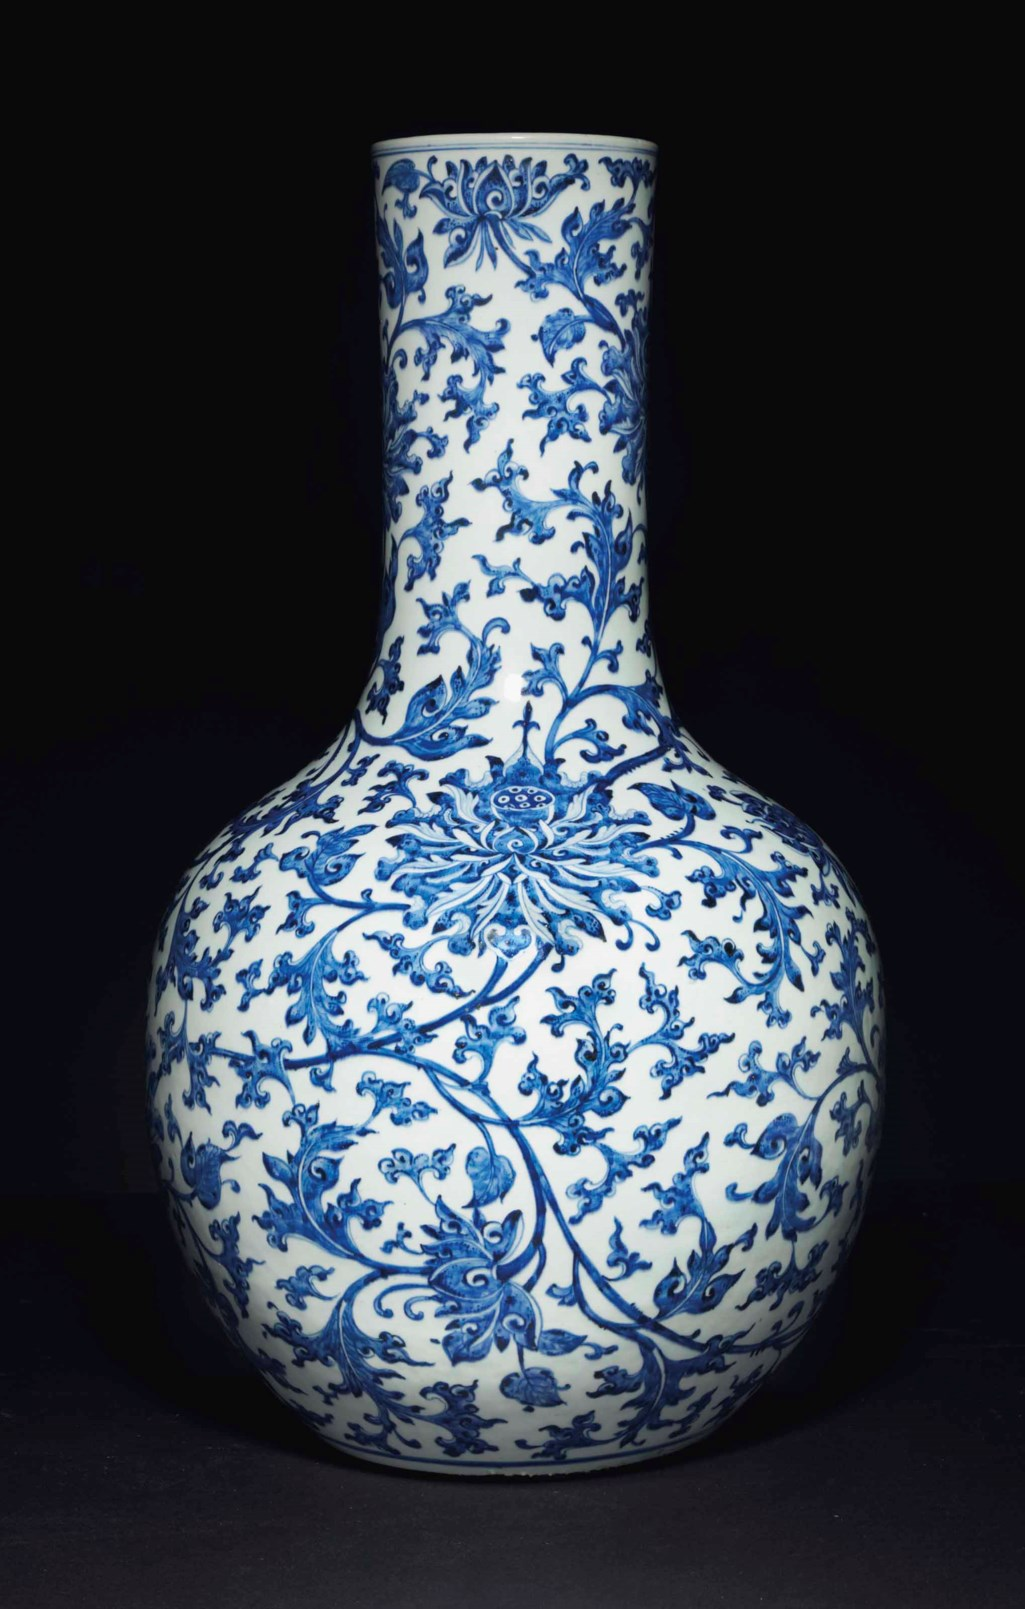 A VERY LARGE CHINESE BLUE AND WHITE 'LOTUS' VASE